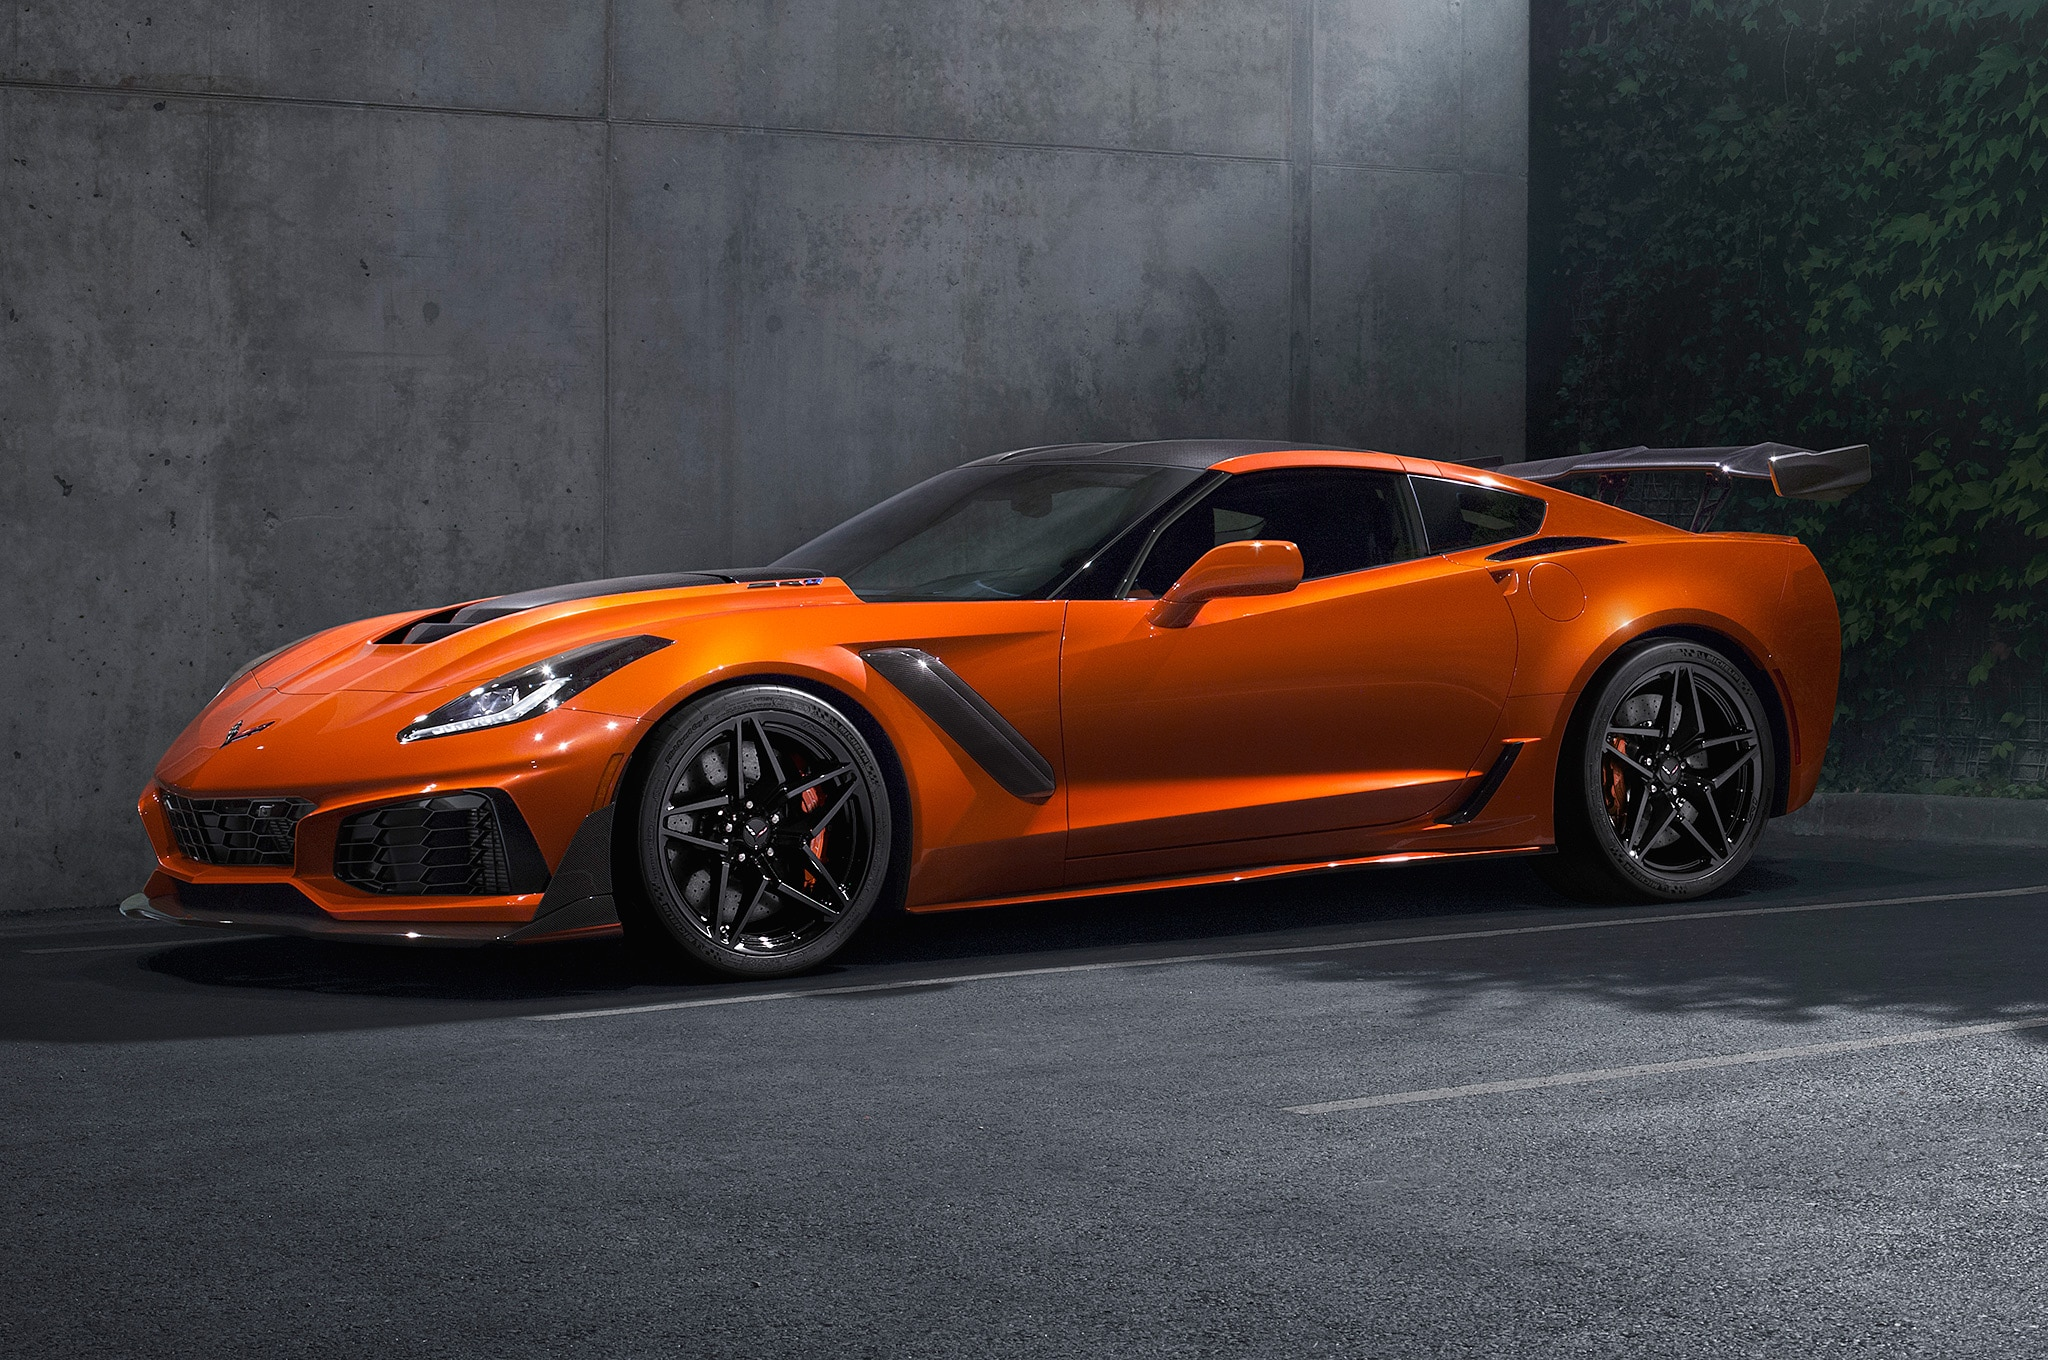 New ZR1 is the most powerful 'Vette yet